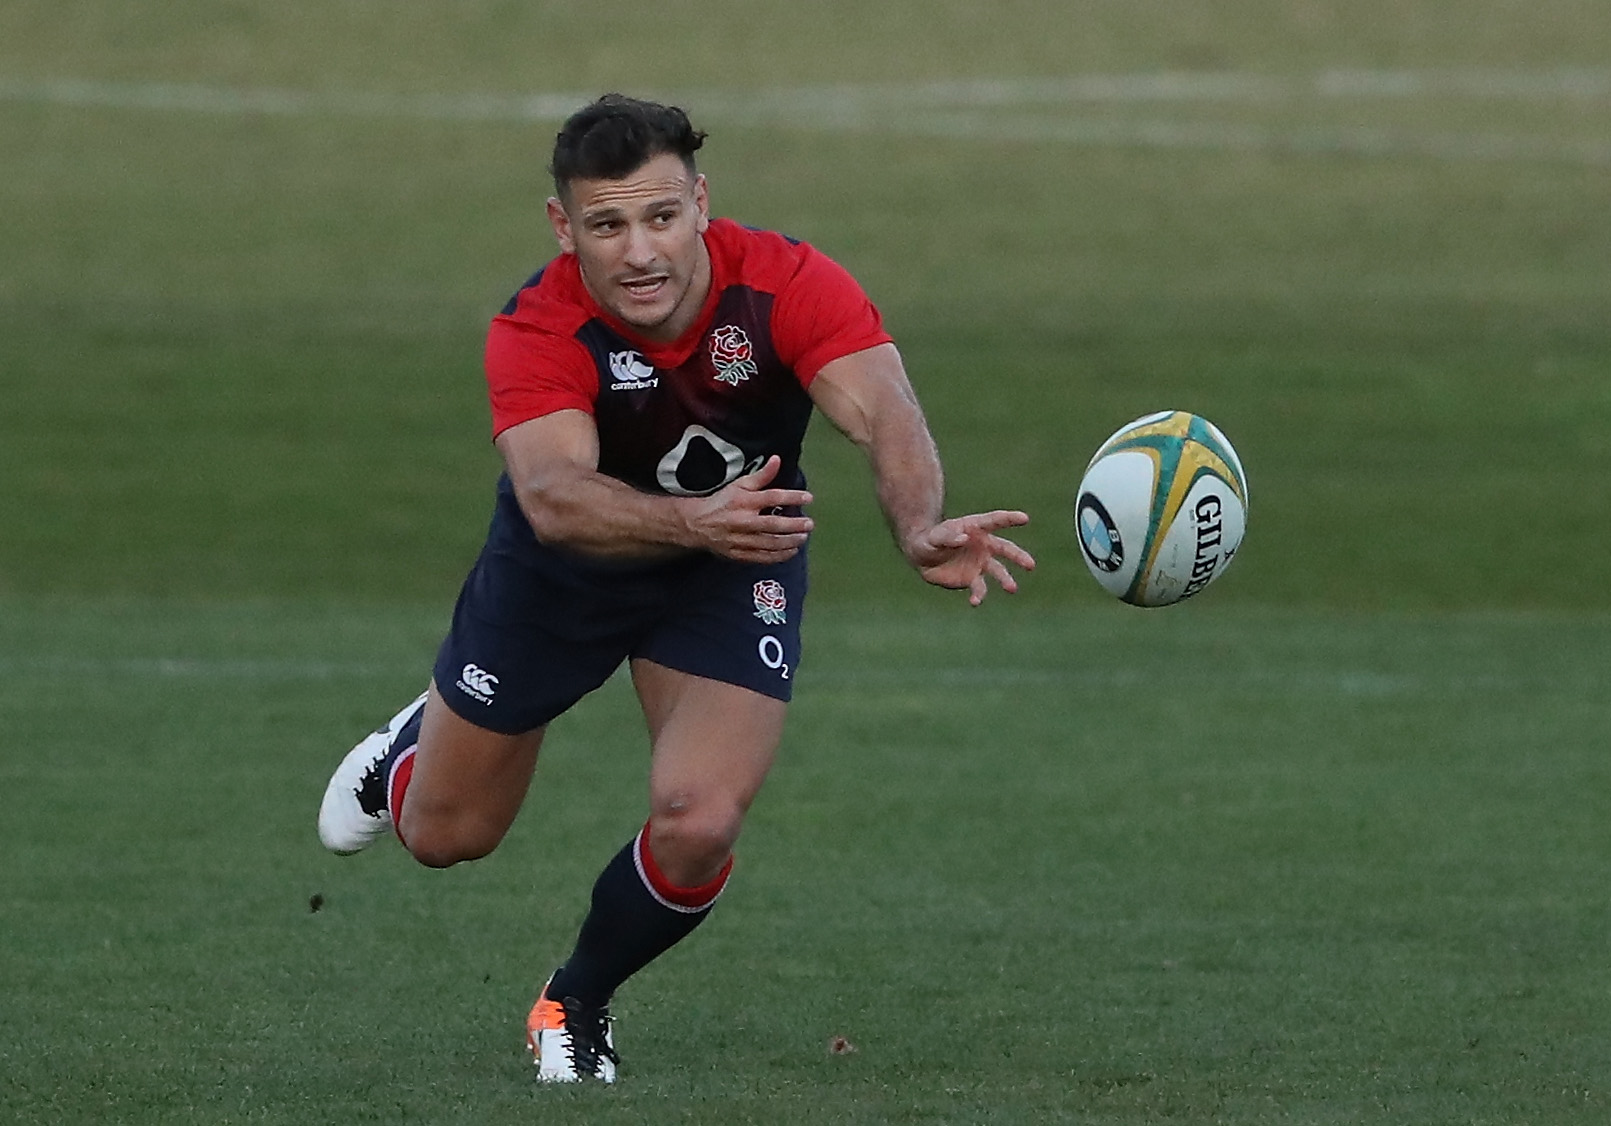 MELBOURNE, AUSTRALIA - JUNE 13: Danny Care passes the ball during the England training session held at Scotch College on June 13, 2016 in Melbourne, Australia. (Photo by David Rogers/Getty Images)